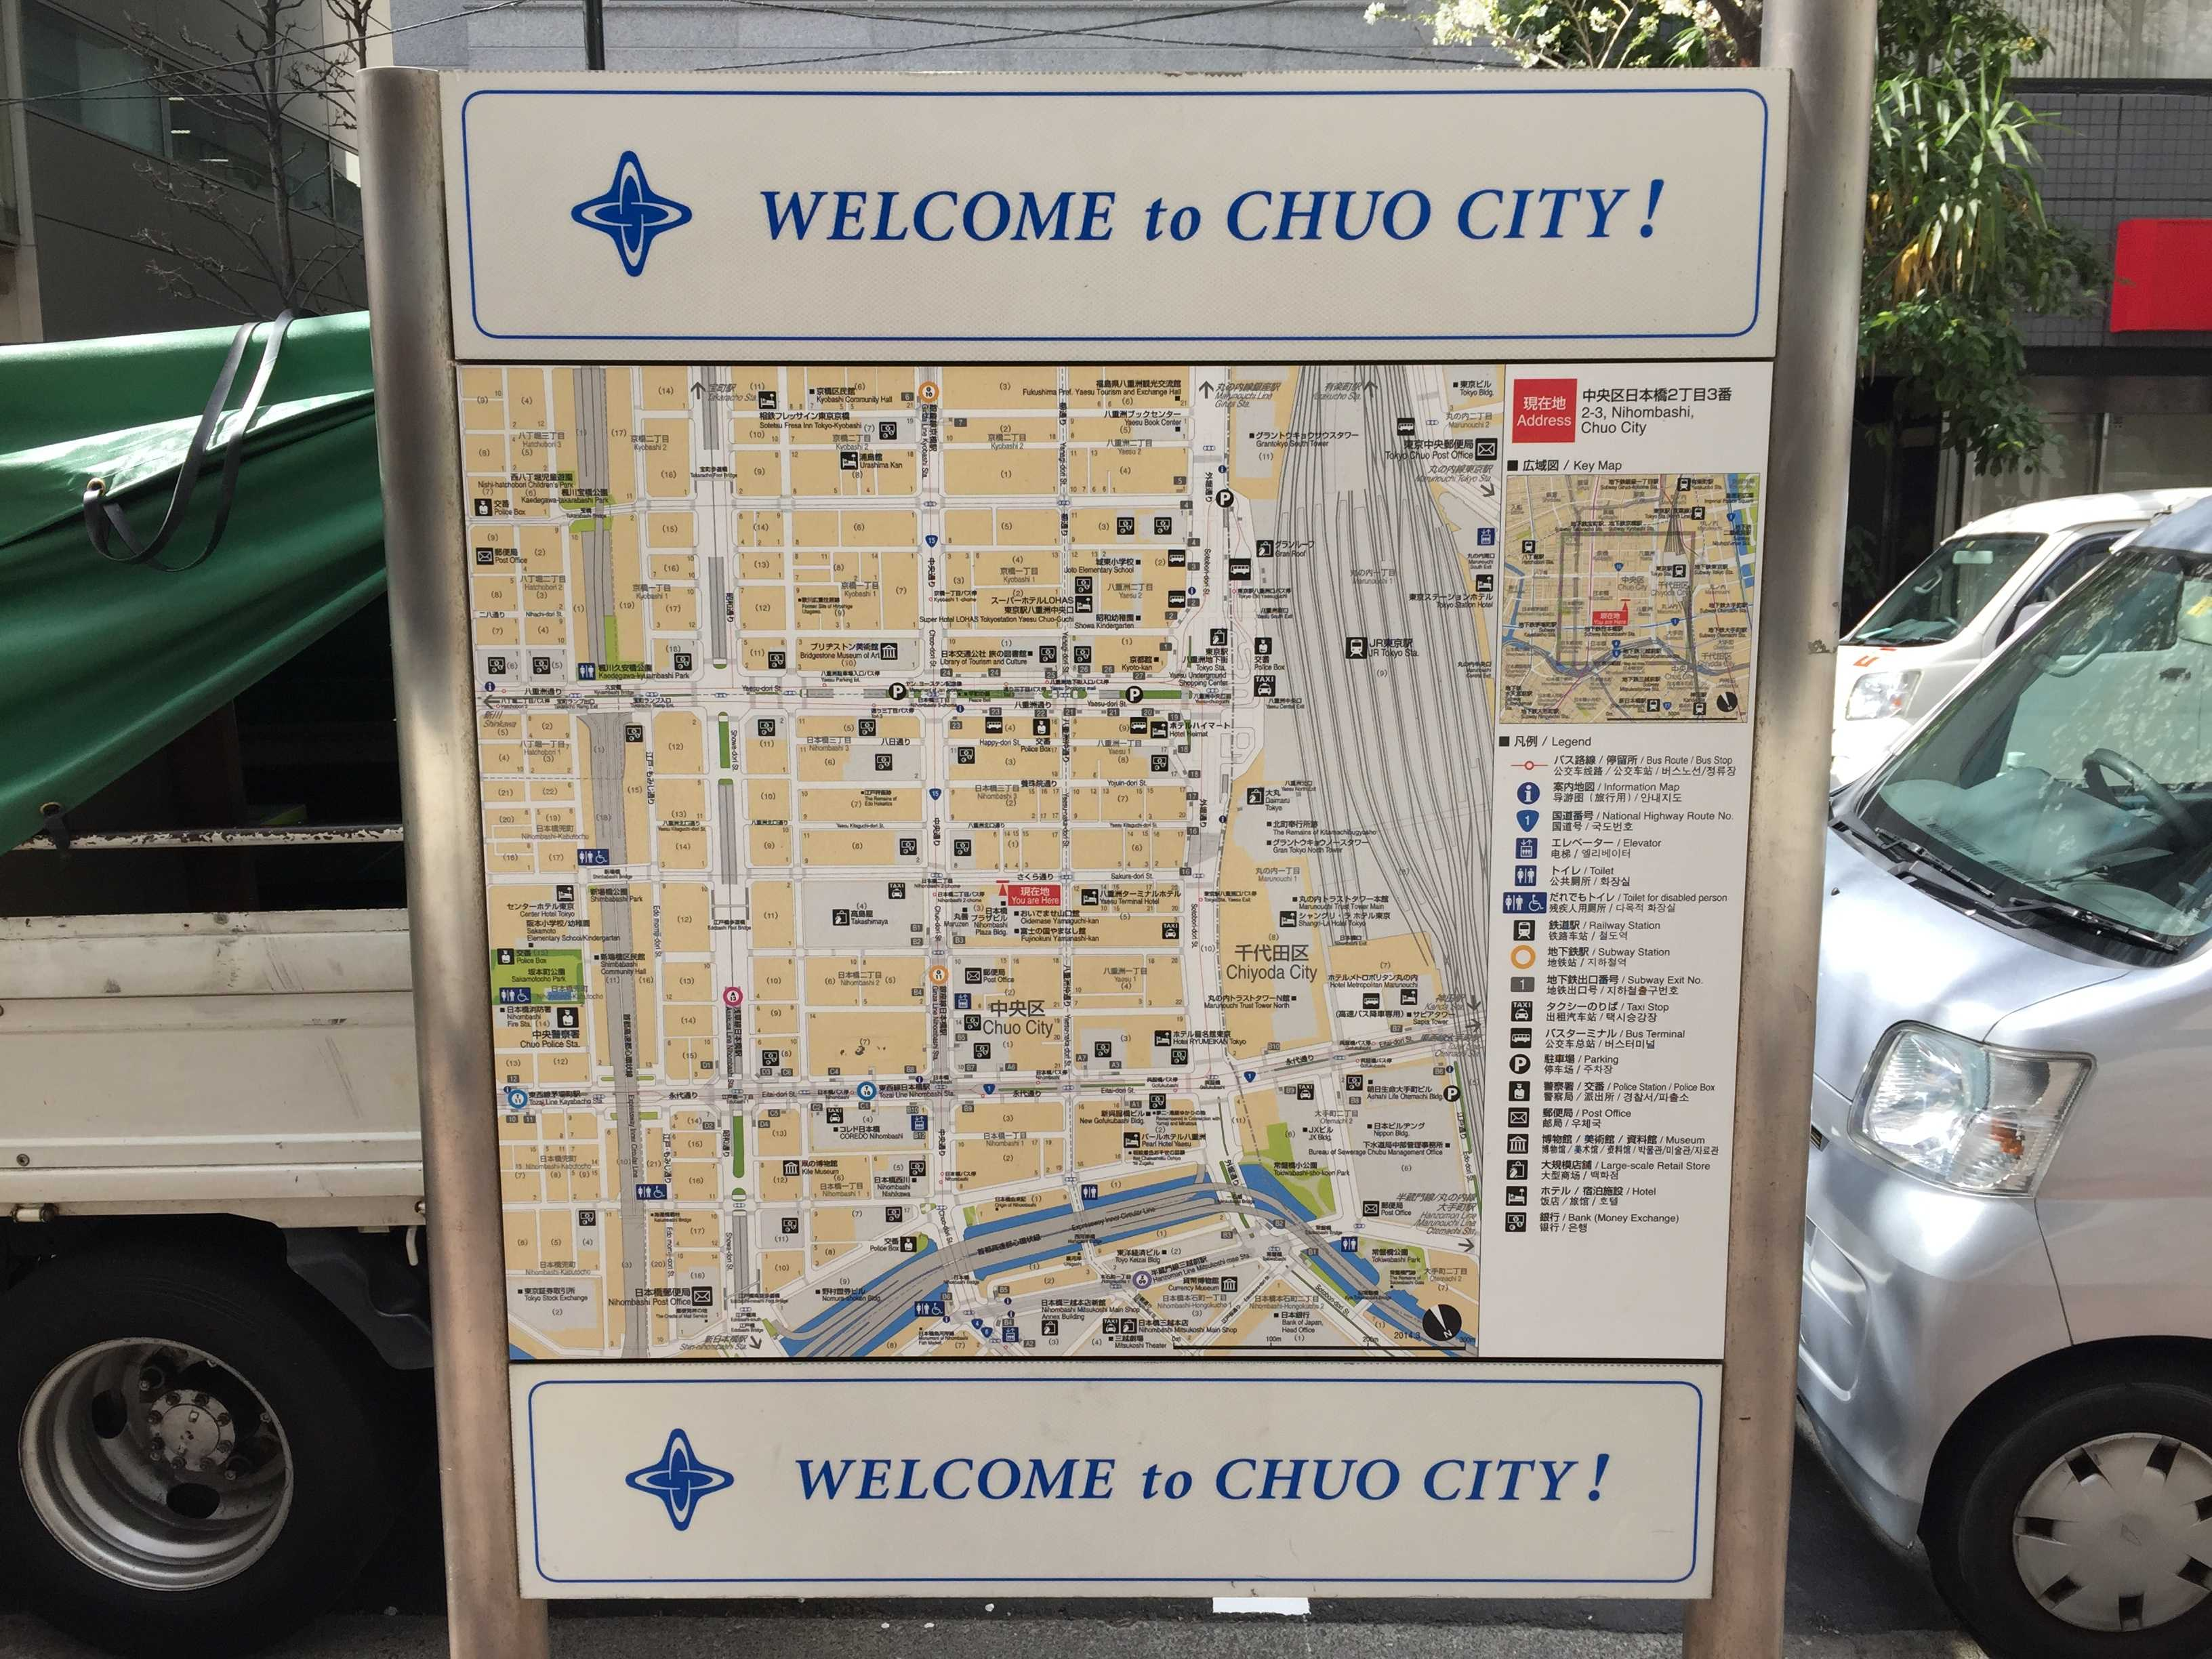 WELCOME to CHUO CITY!